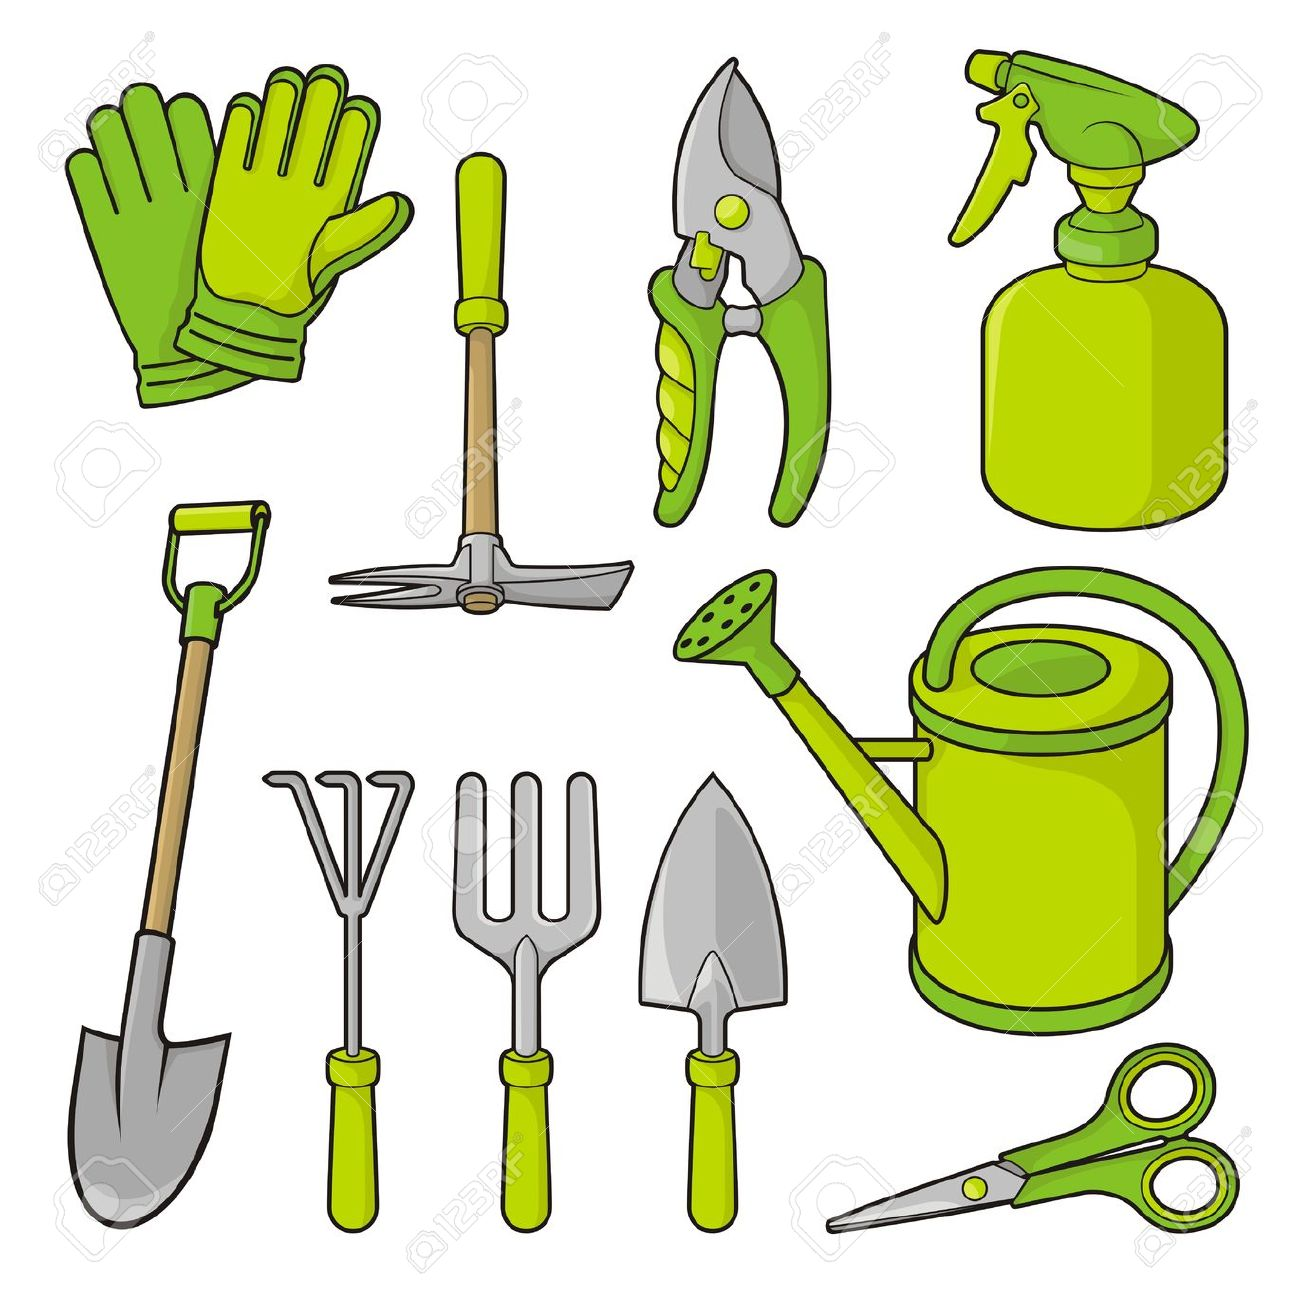 Paleontologist tools black and white clipart.